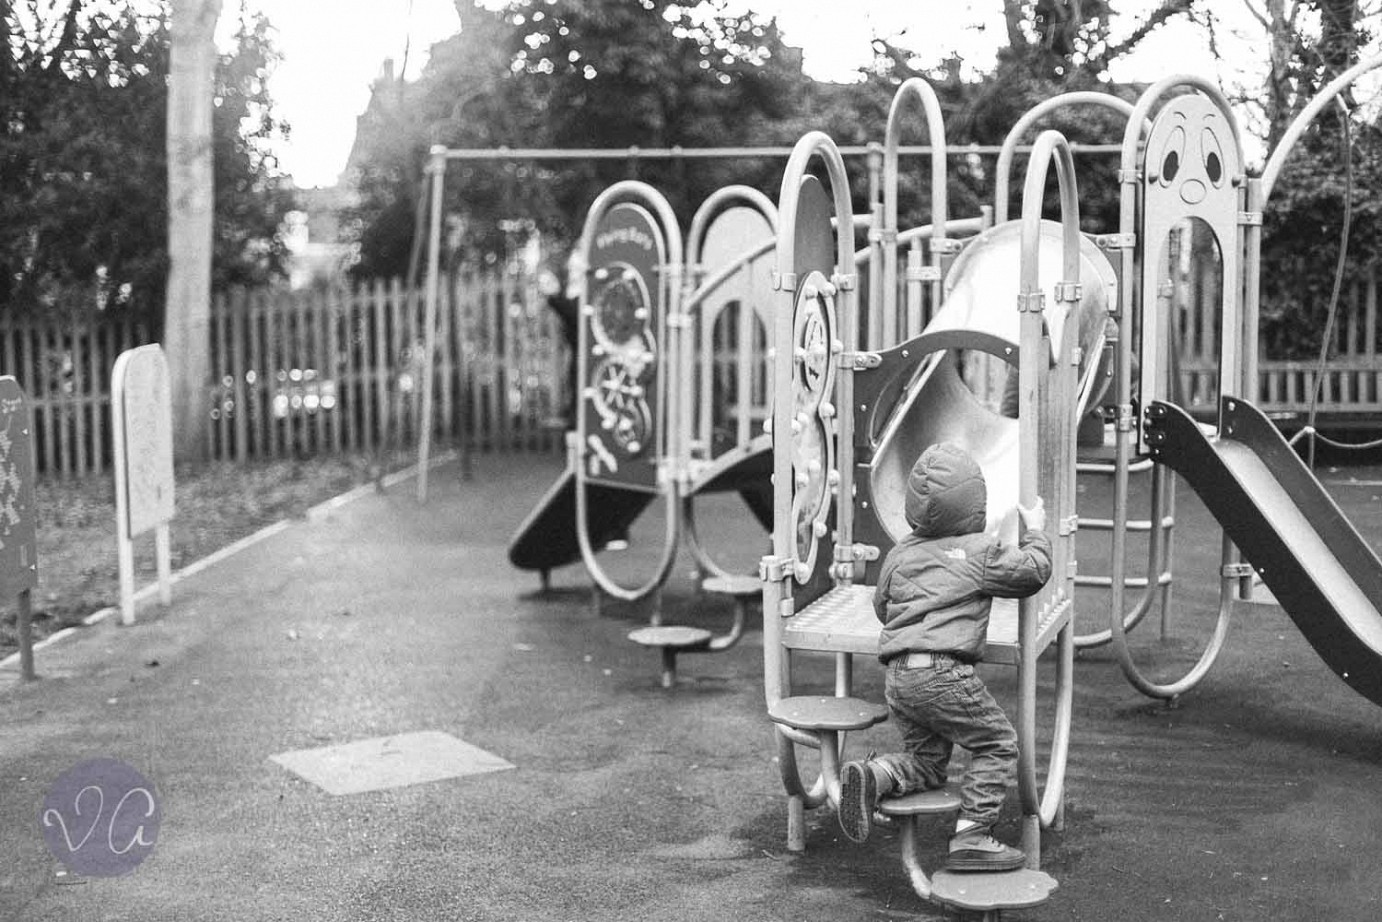 veronica-armstrong-playground